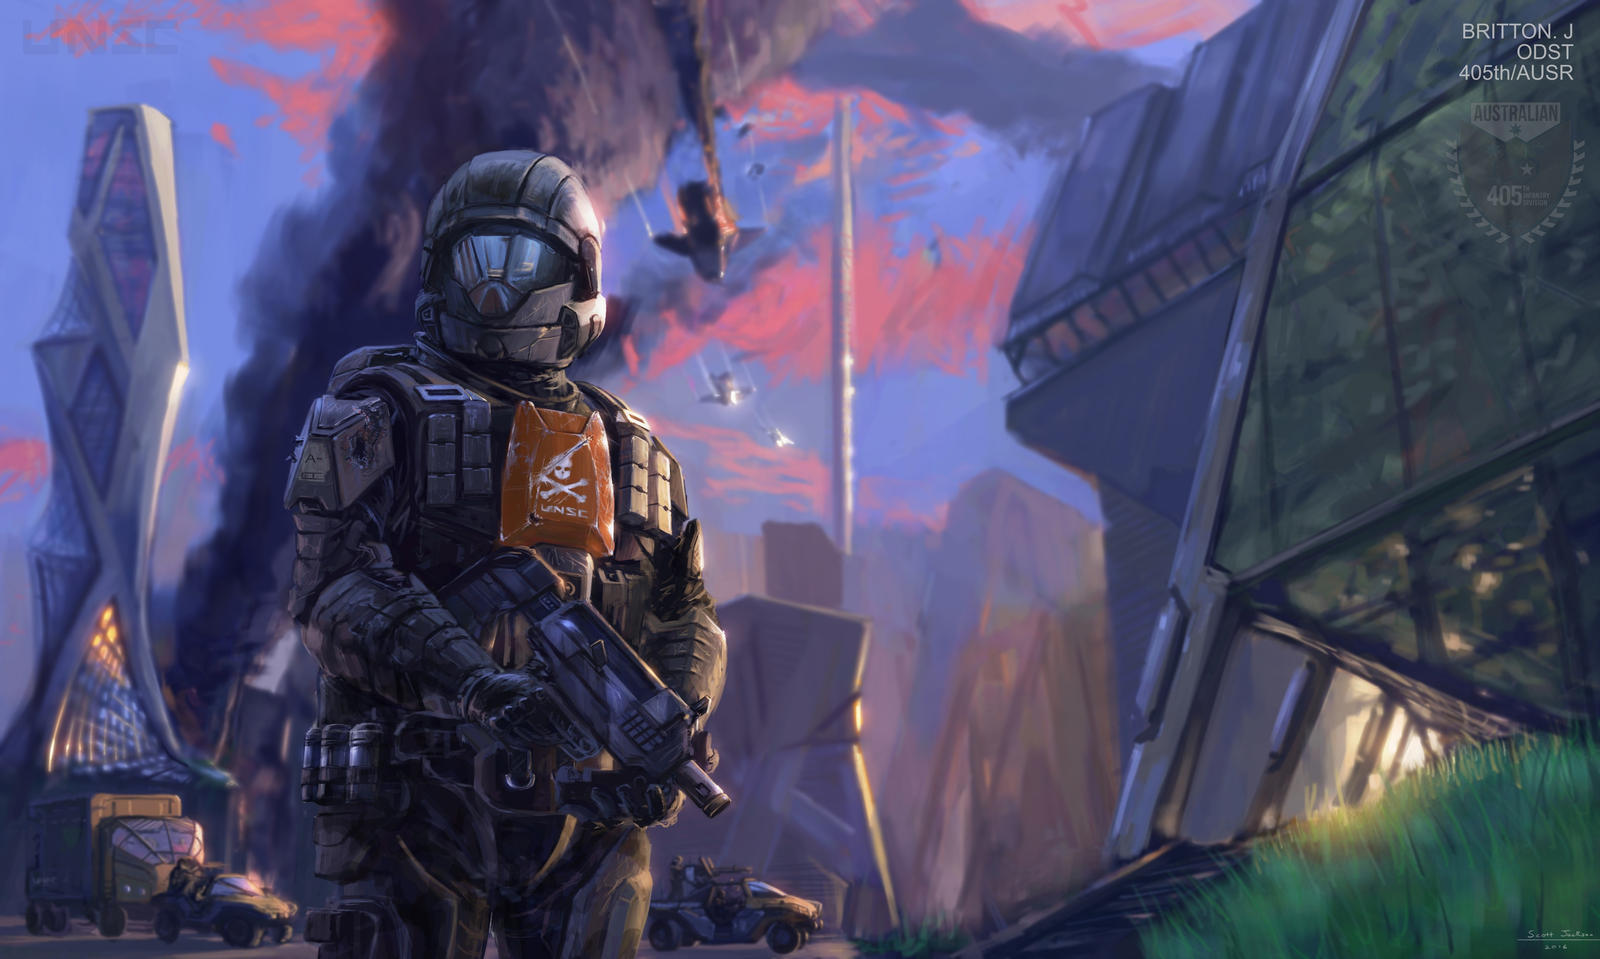 Halo 405th odst by lostdecay on deviantart - Halo odst images ...